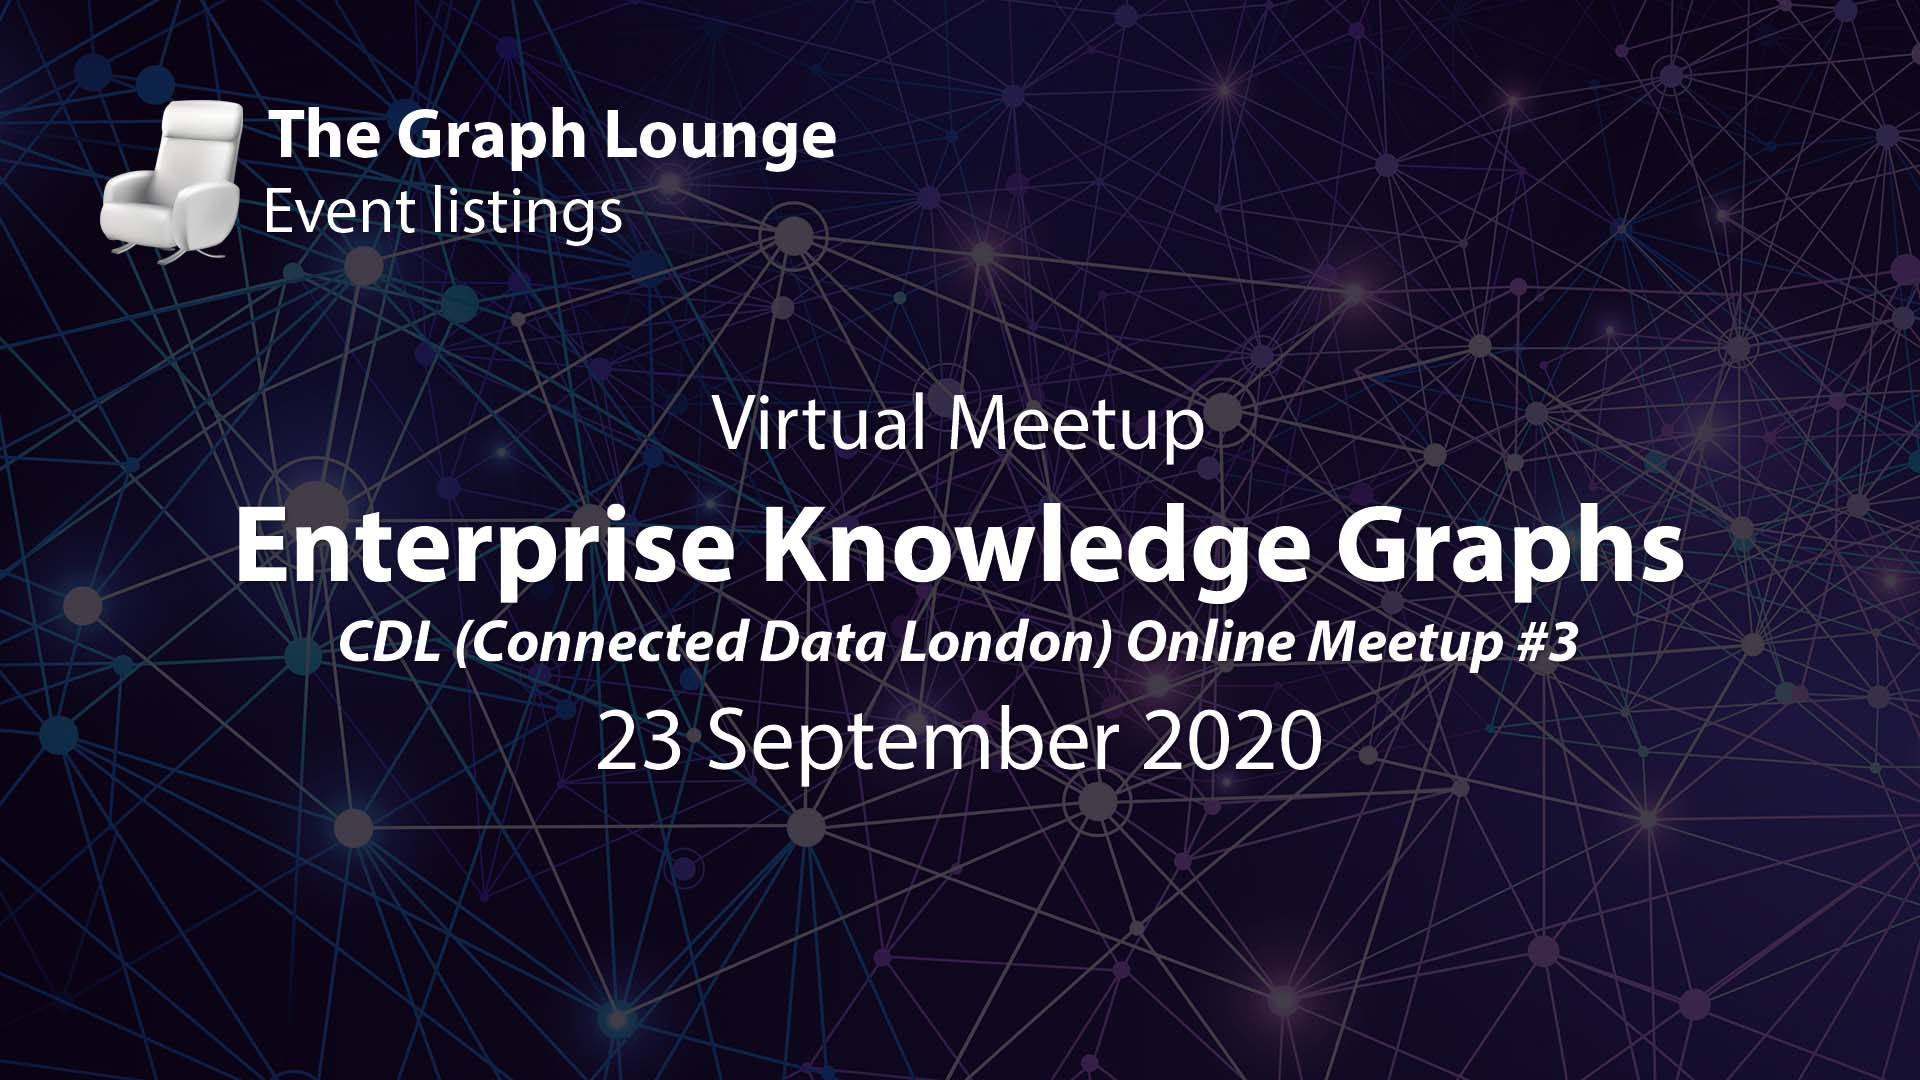 Enterprise Knowledge Graphs (CDL Online Meetup #3)